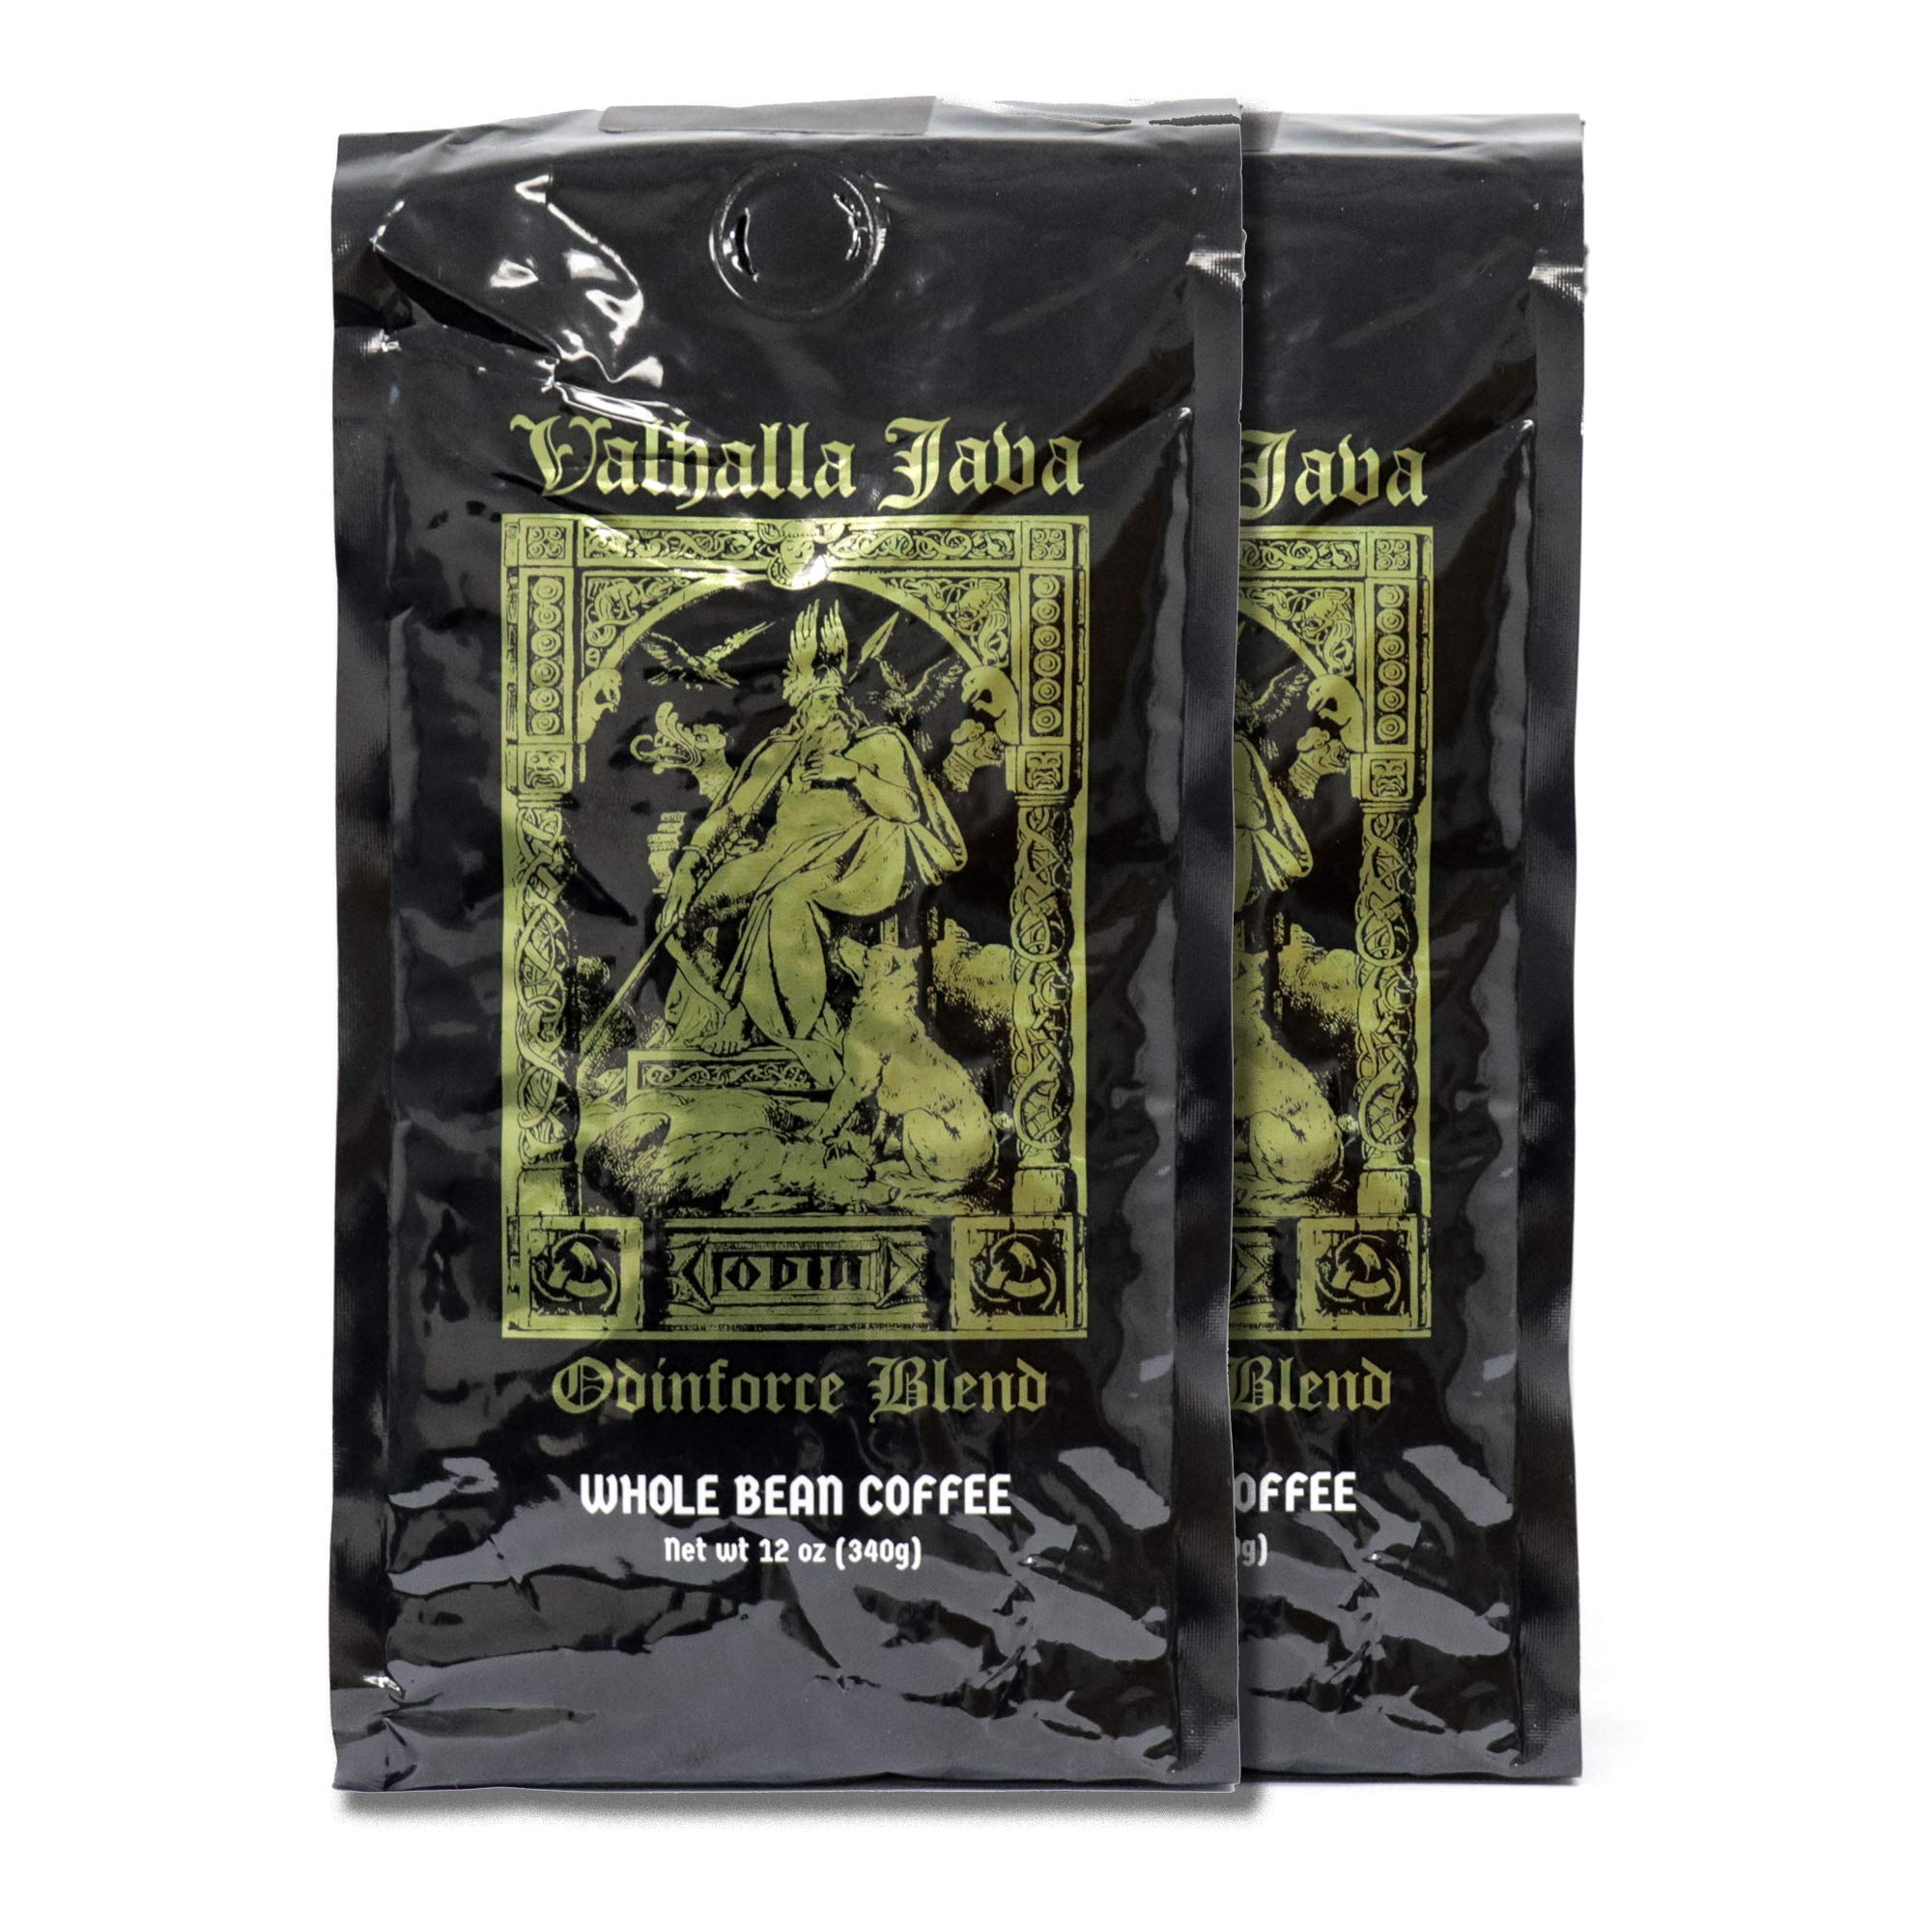 Valhalla Java Whole Bean Coffee Bundle Deal, USDA Certified Organic & Fair Trade (2-Pack) 24oz by Death Wish Coffee Co.